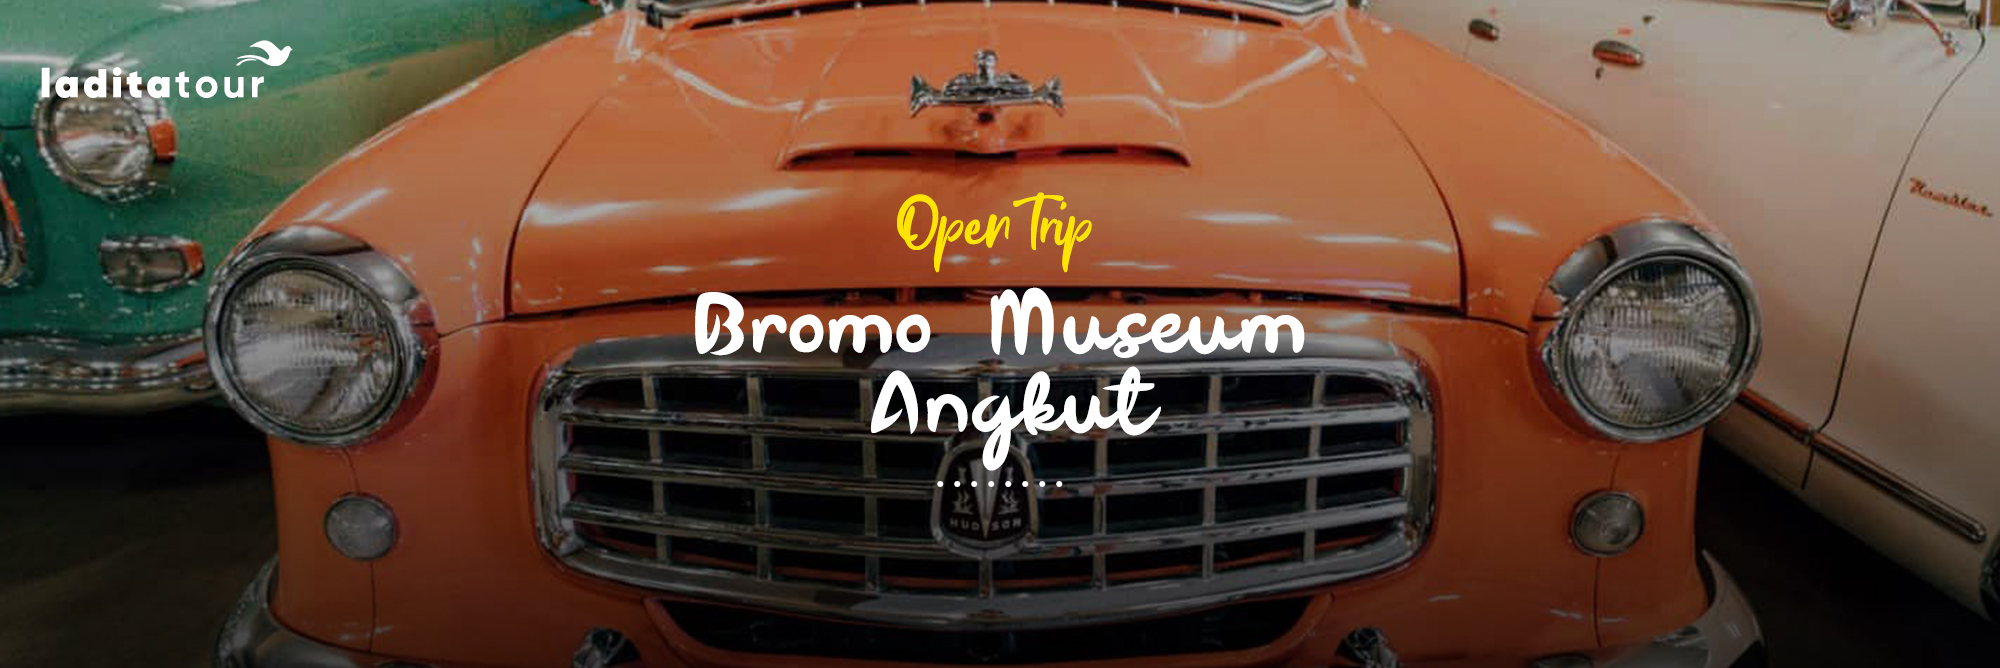 Open Trip Bromo Museum Angkut